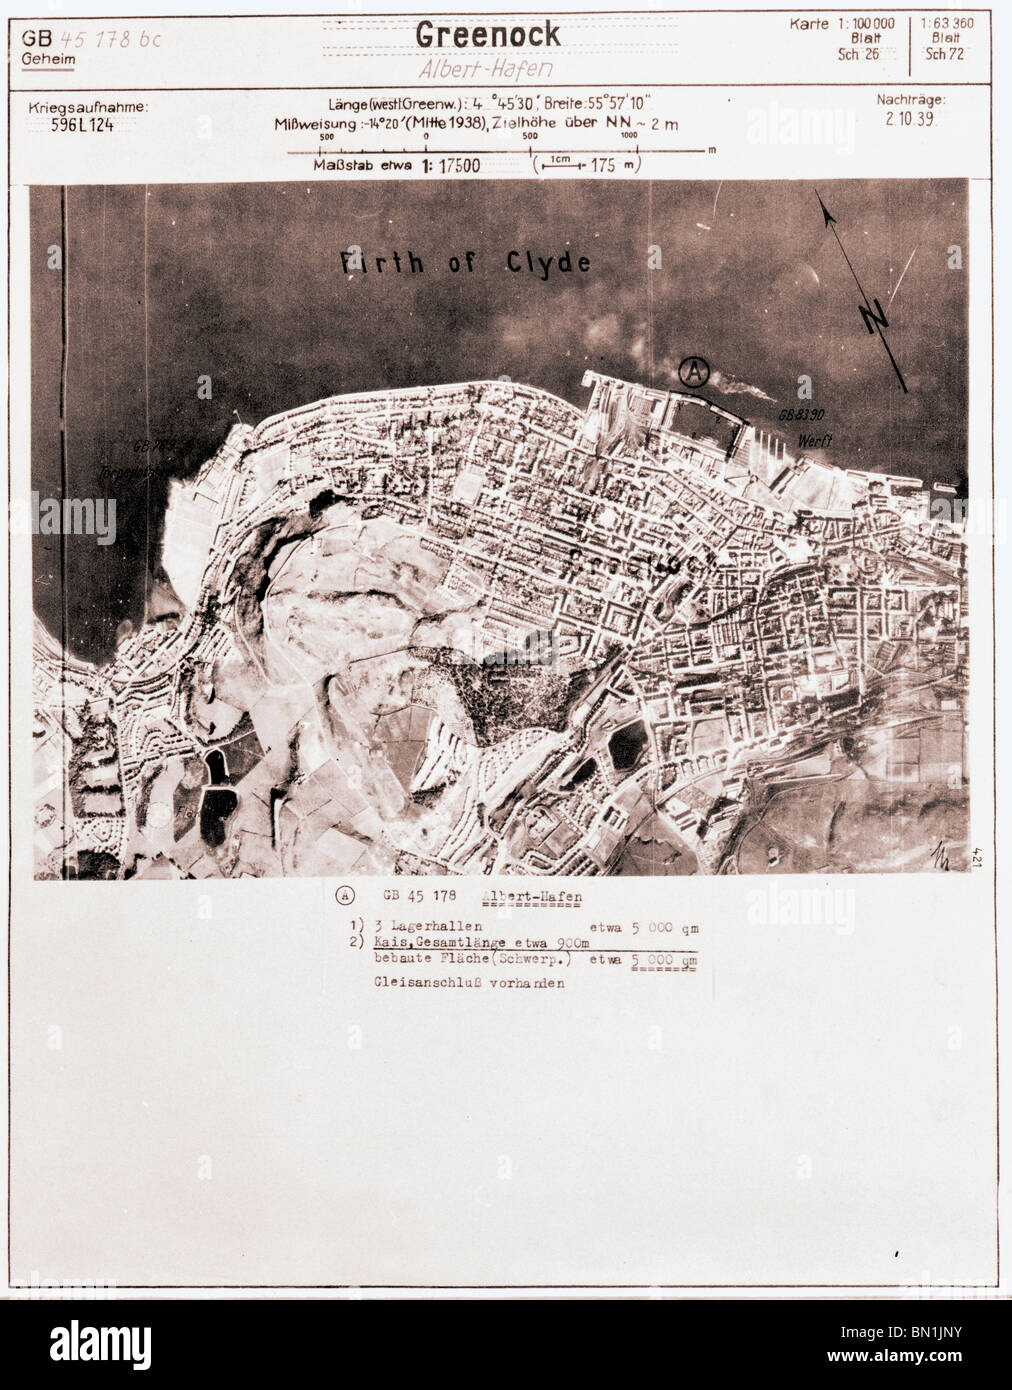 Forth of Clyde, Greenock, Glasgow - Scotland 1940 Shipyards Luftwaffe Aerial Image - Stock Image